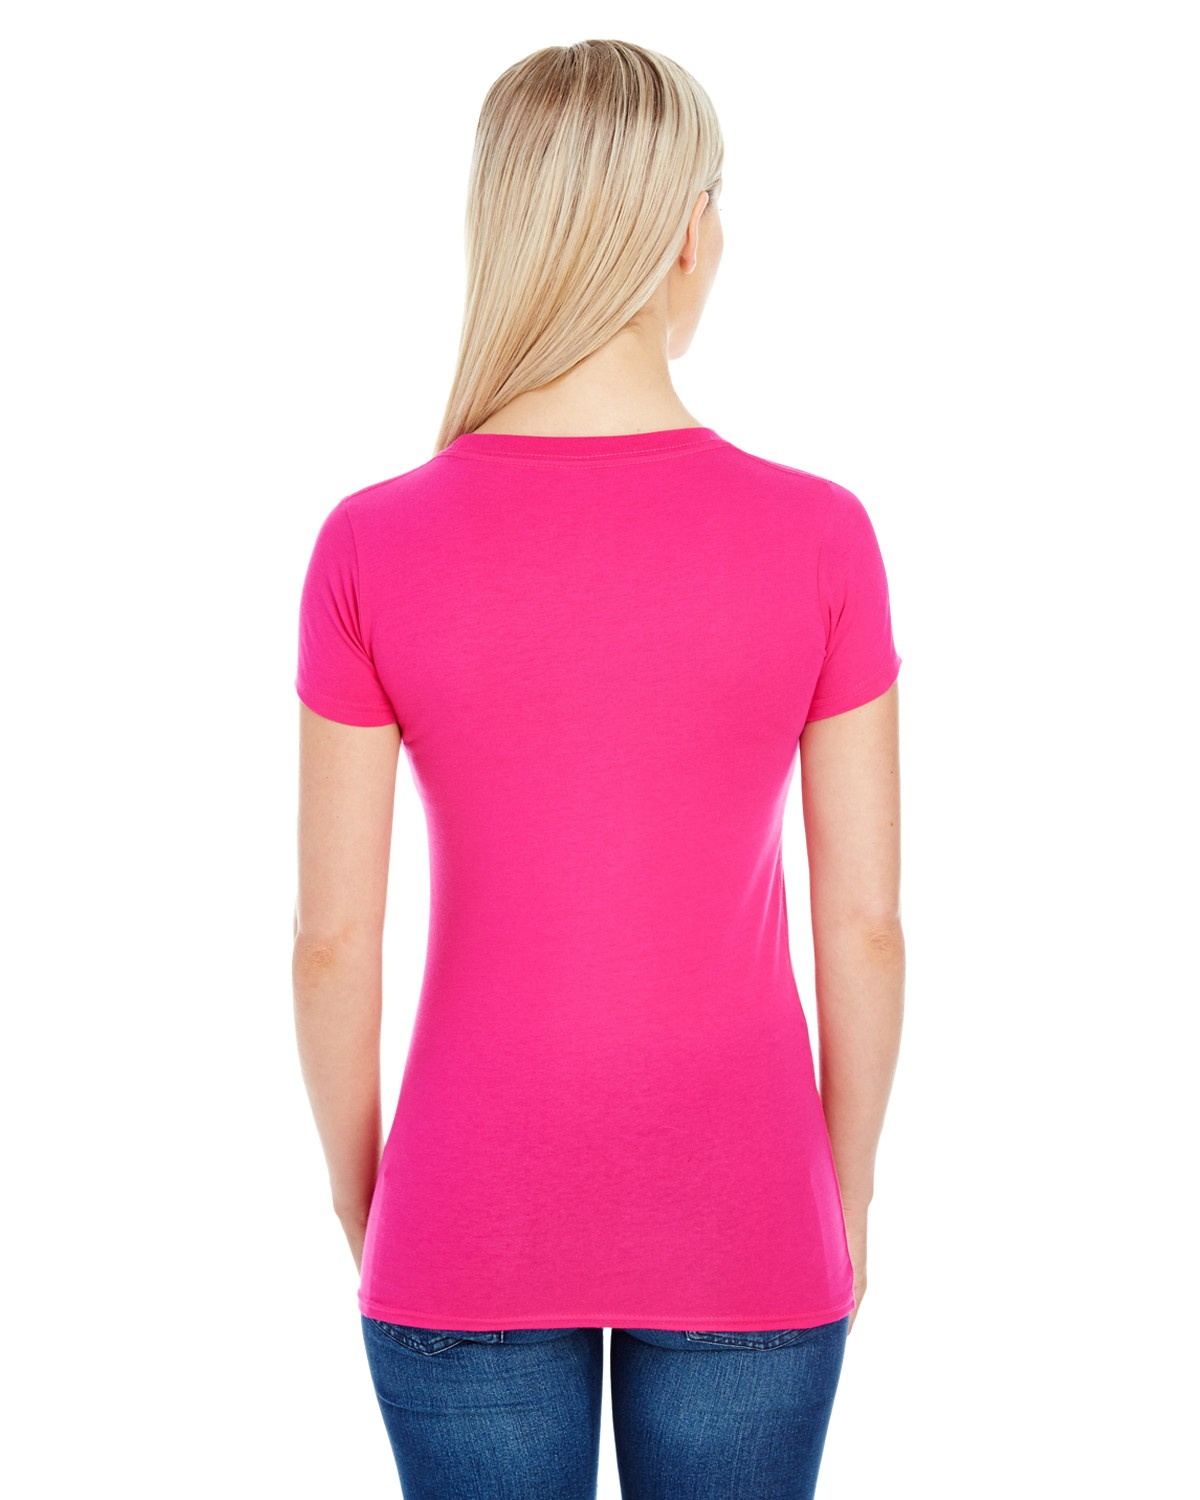 220S Threadfast Apparel ACTIVE PINK